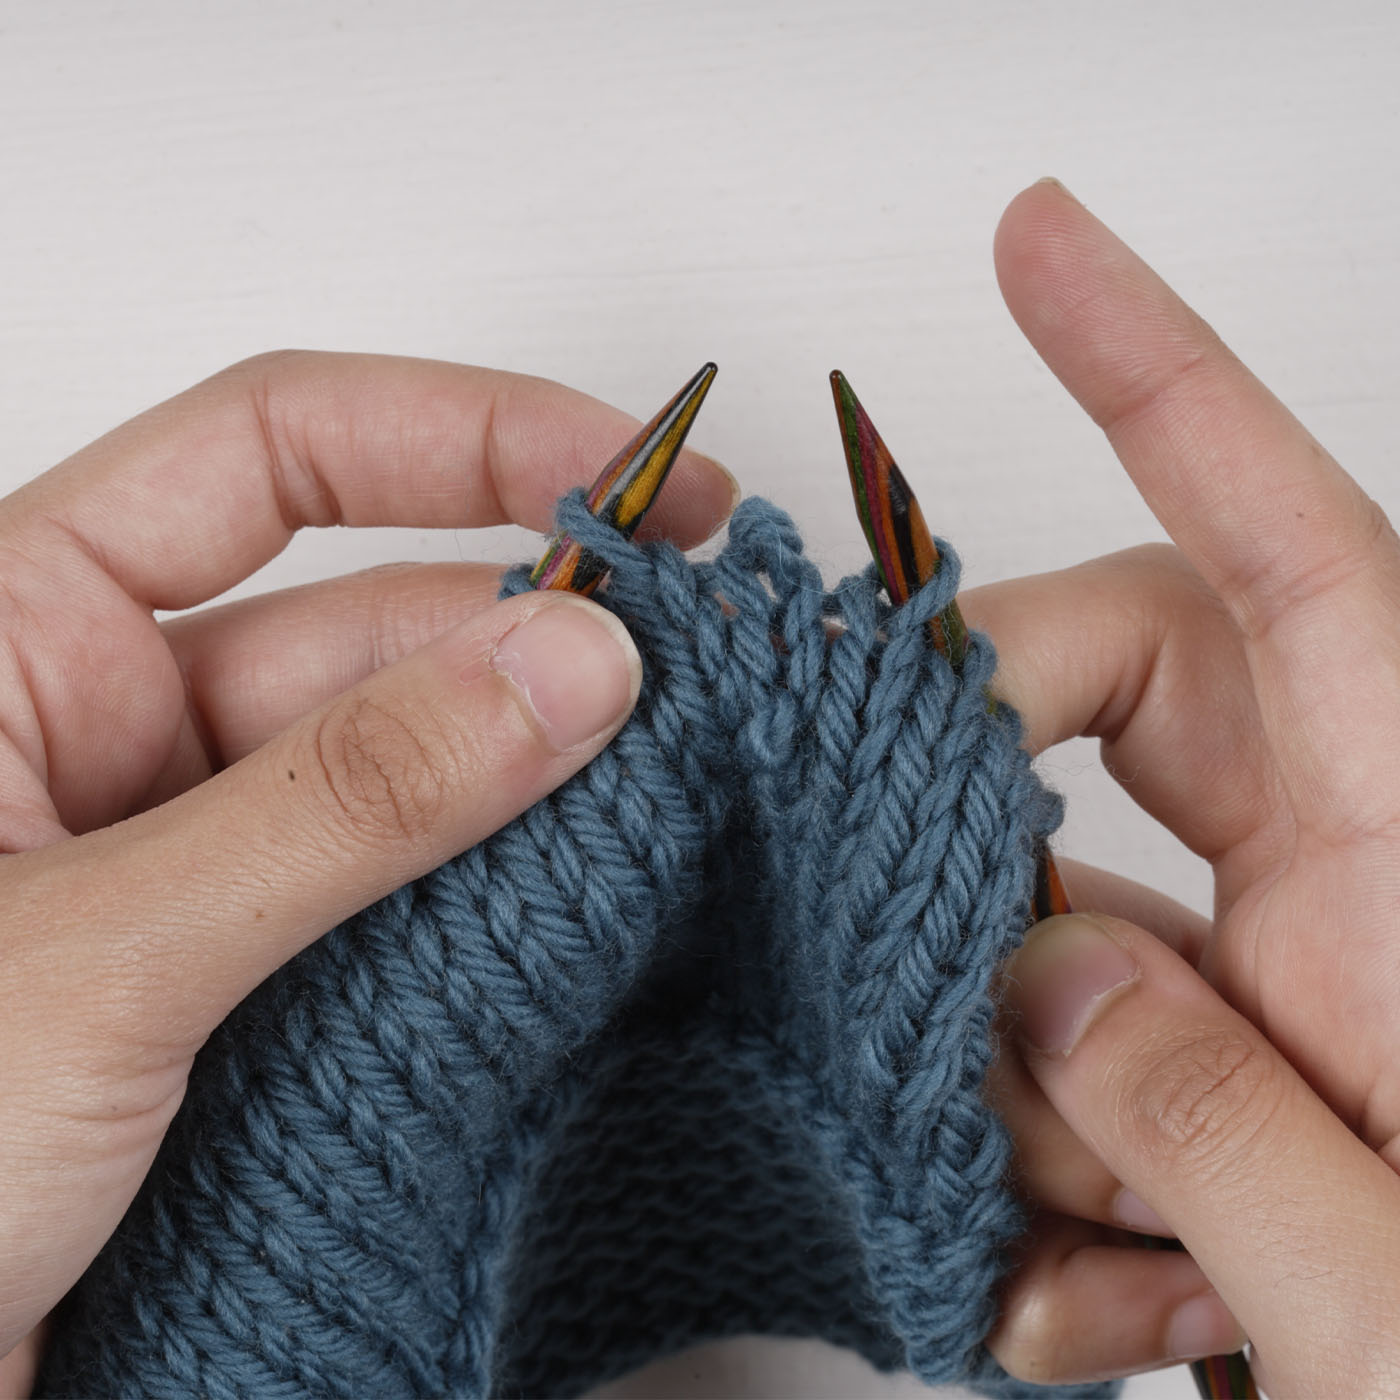 Episode 328: Our Knitting Mistakes